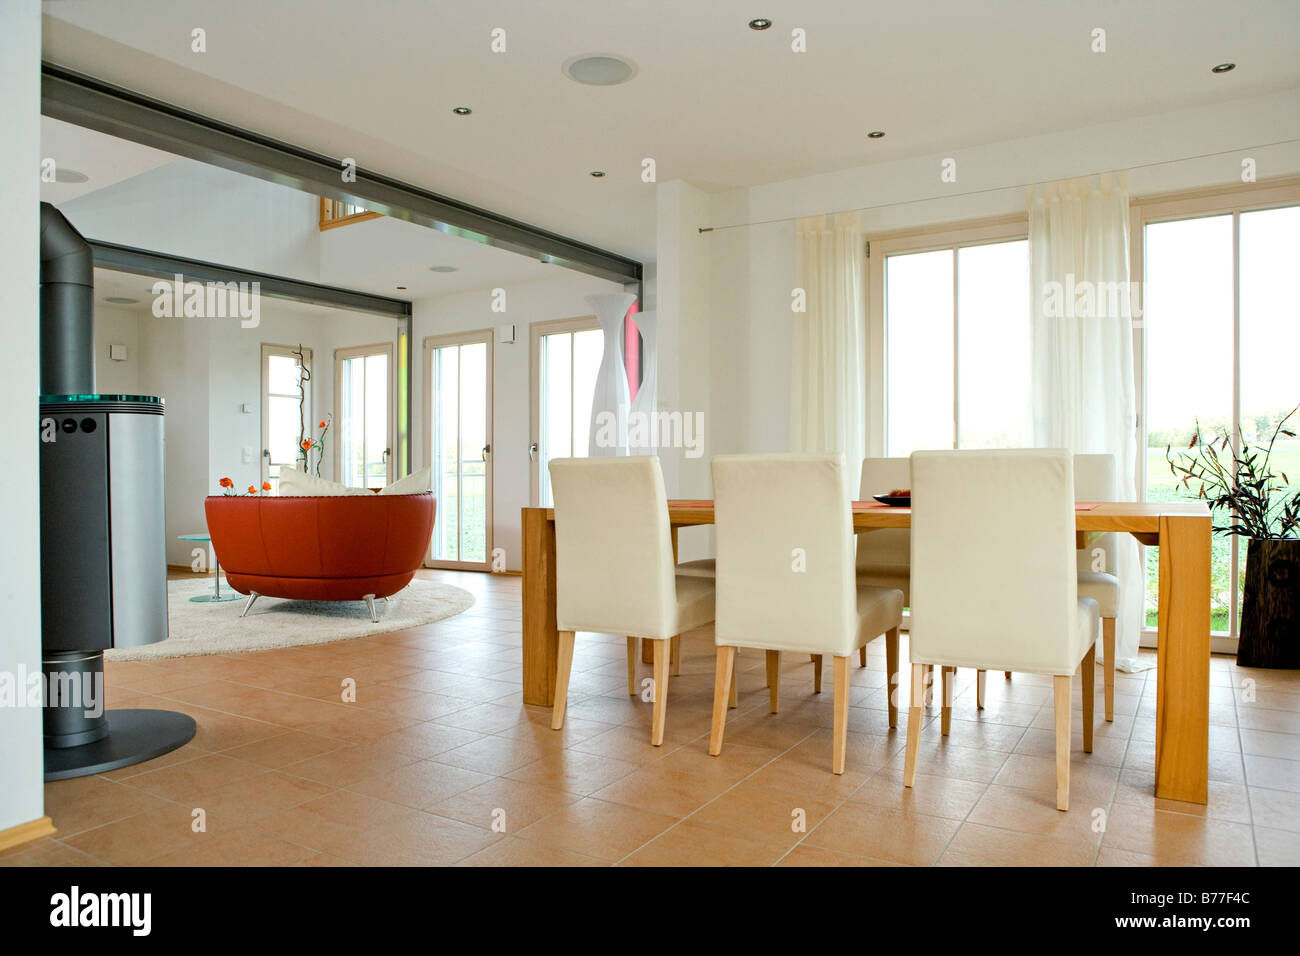 Interior Esszimmer Modernes Esszimmer Modern Dining Room Stock Photo 21678508 Alamy